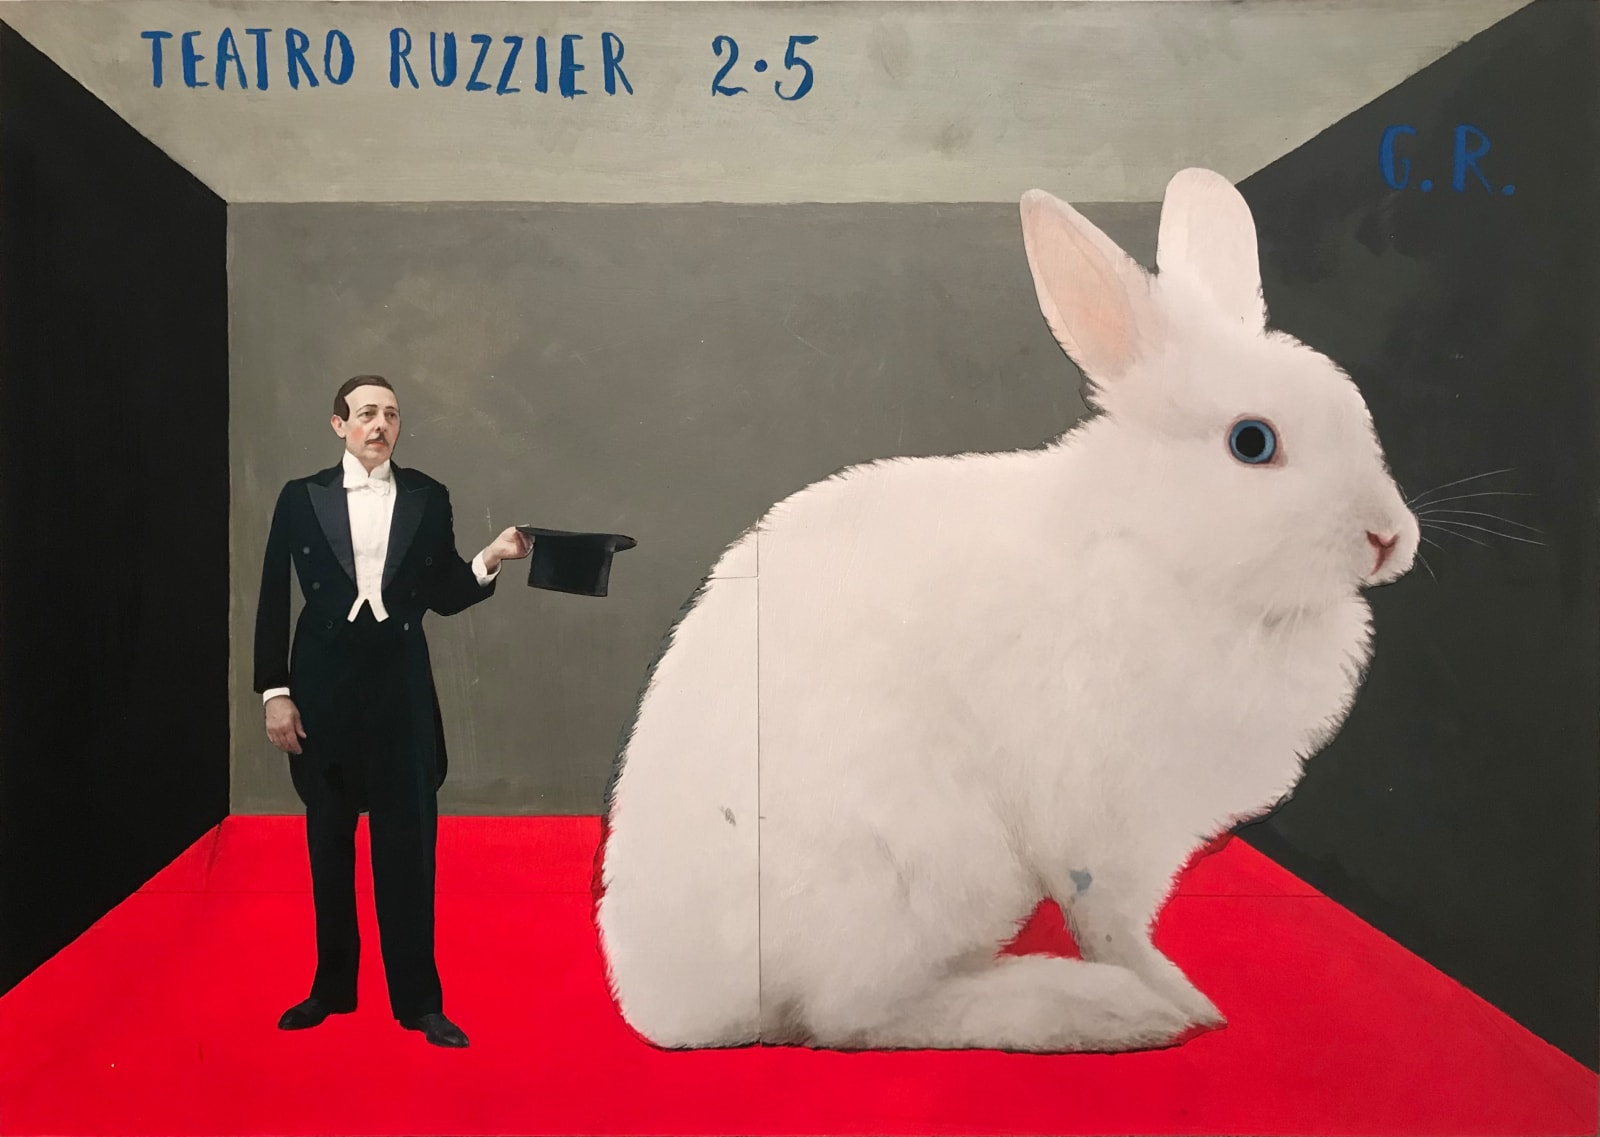 Paolo Ventura collage of magician with top hat in hand and large bunny next to him